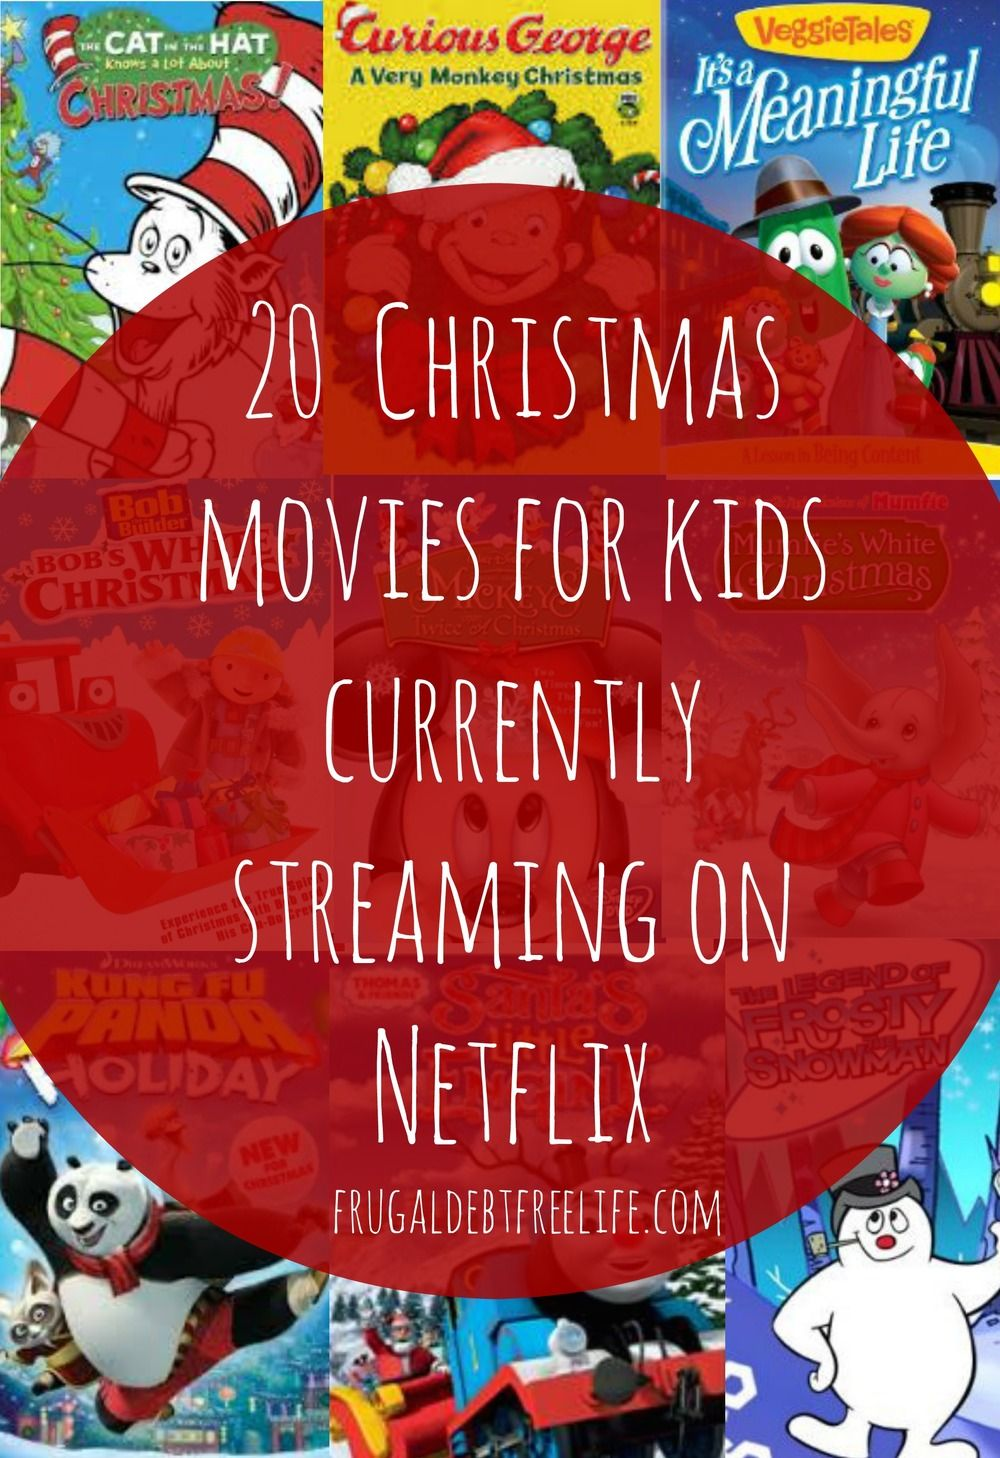 Christmas movies for small Children streaming on Netflix | Netflix ...